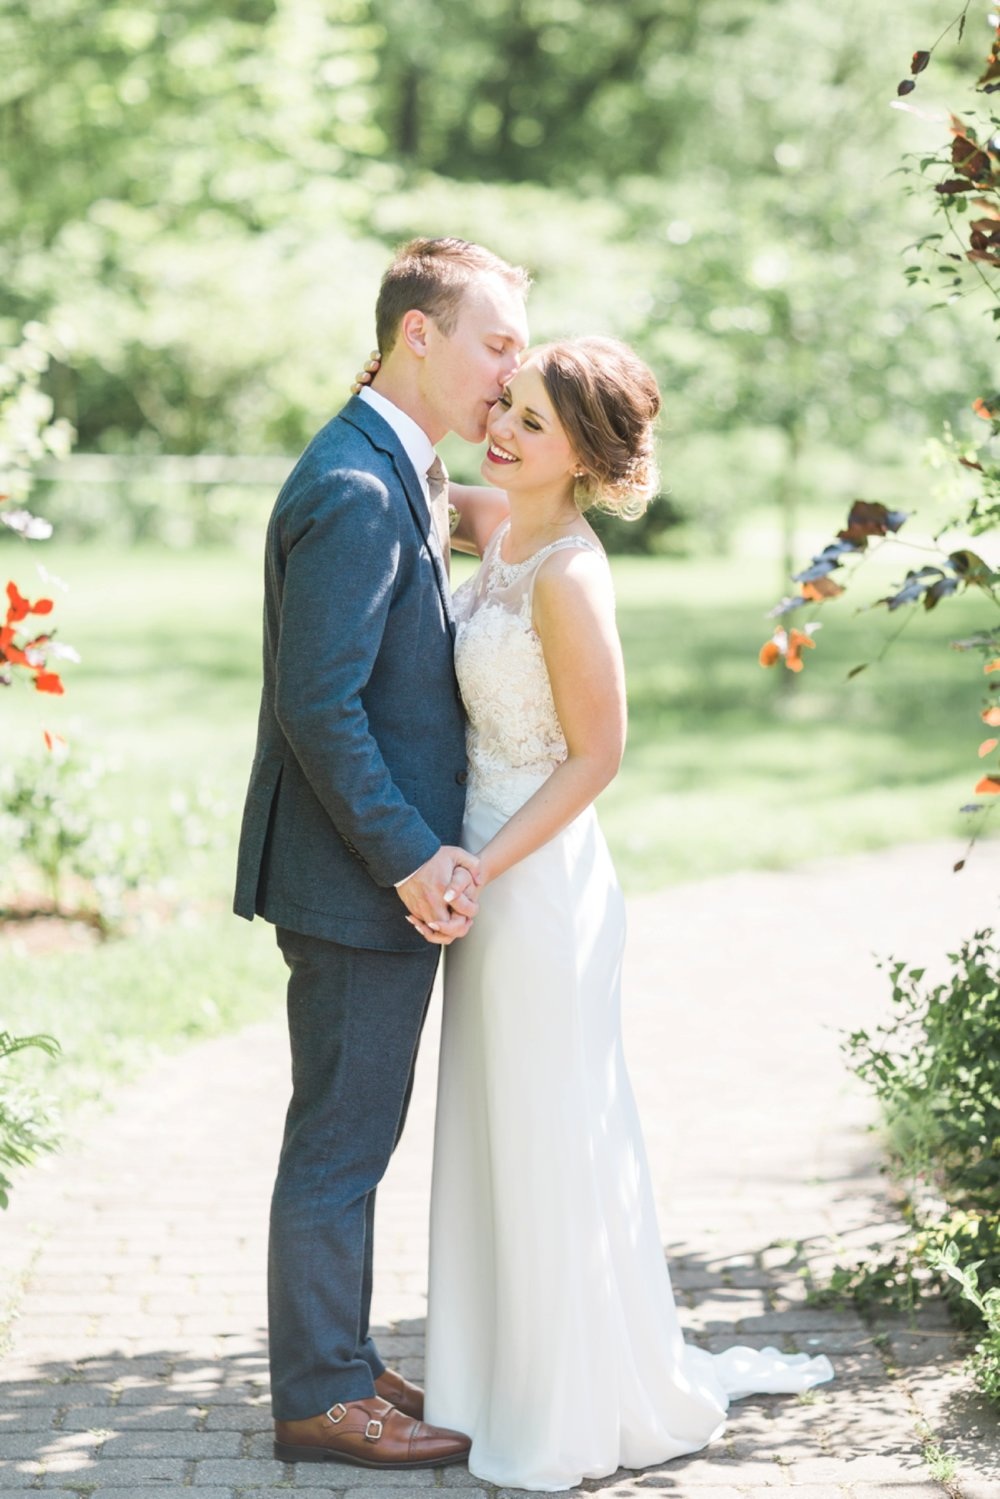 wegerzyn-gardens-wedding-dayton-ohio-chloe-luka-photography_0051.jpg